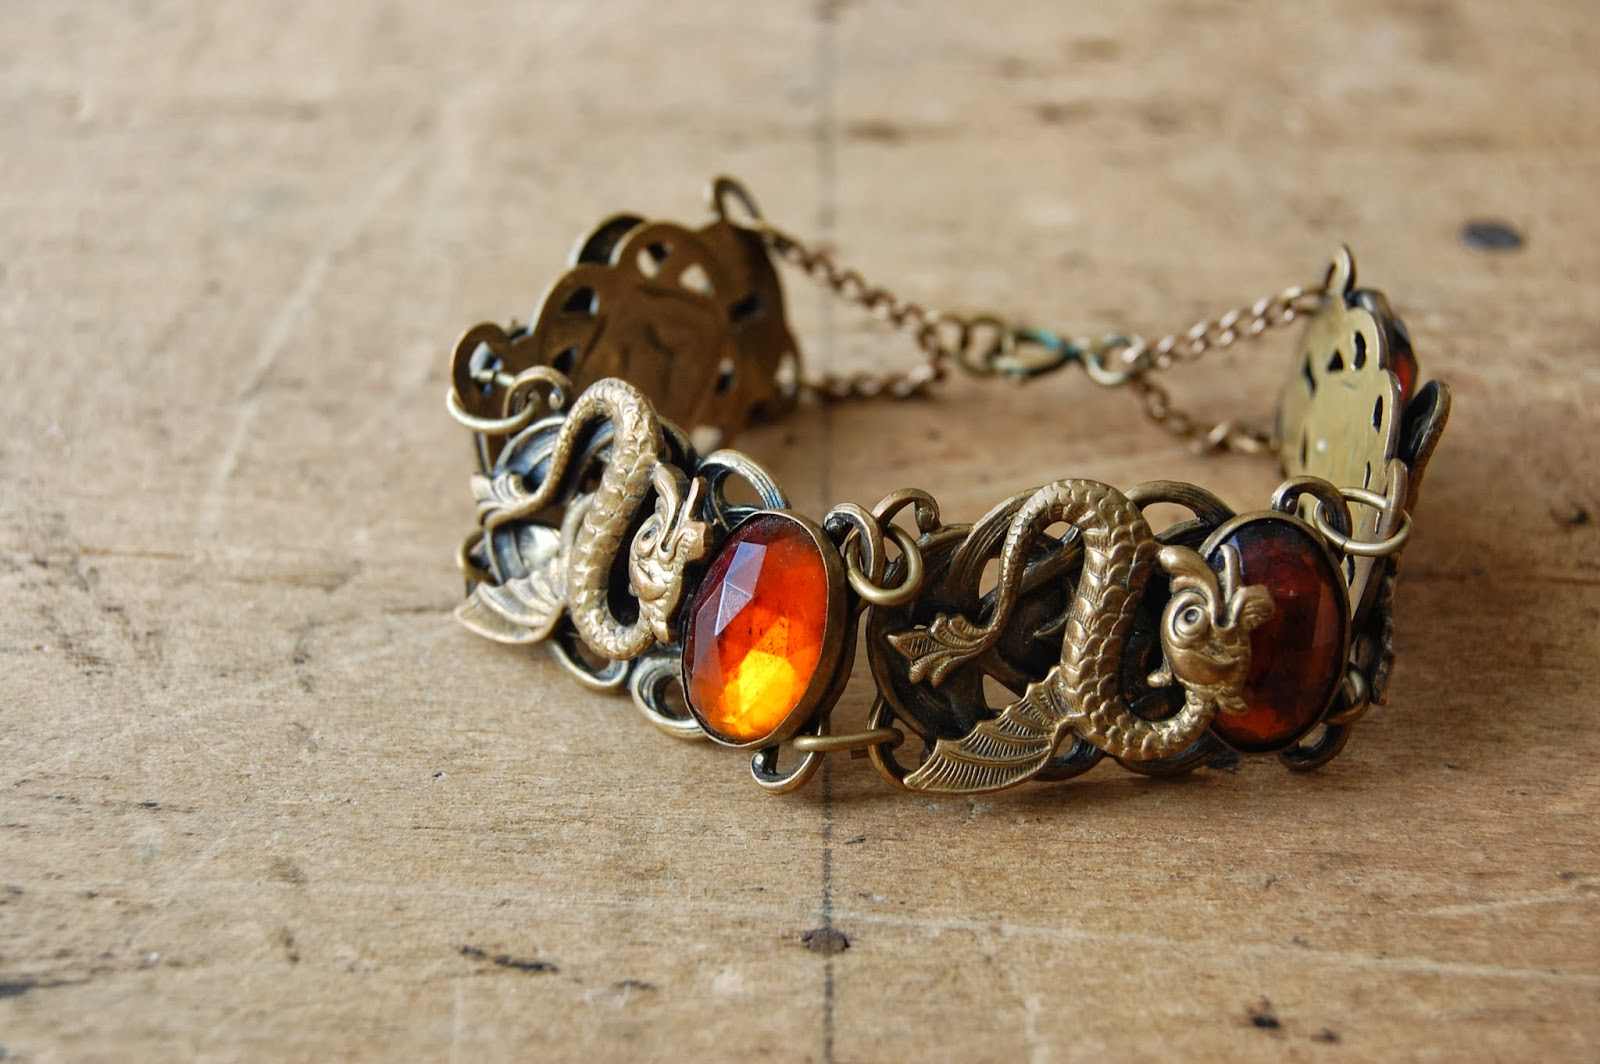 https://www.etsy.com/listing/179985003/antique-czech-glass-sea-dragon-bracelet?ref=shop_home_active_1